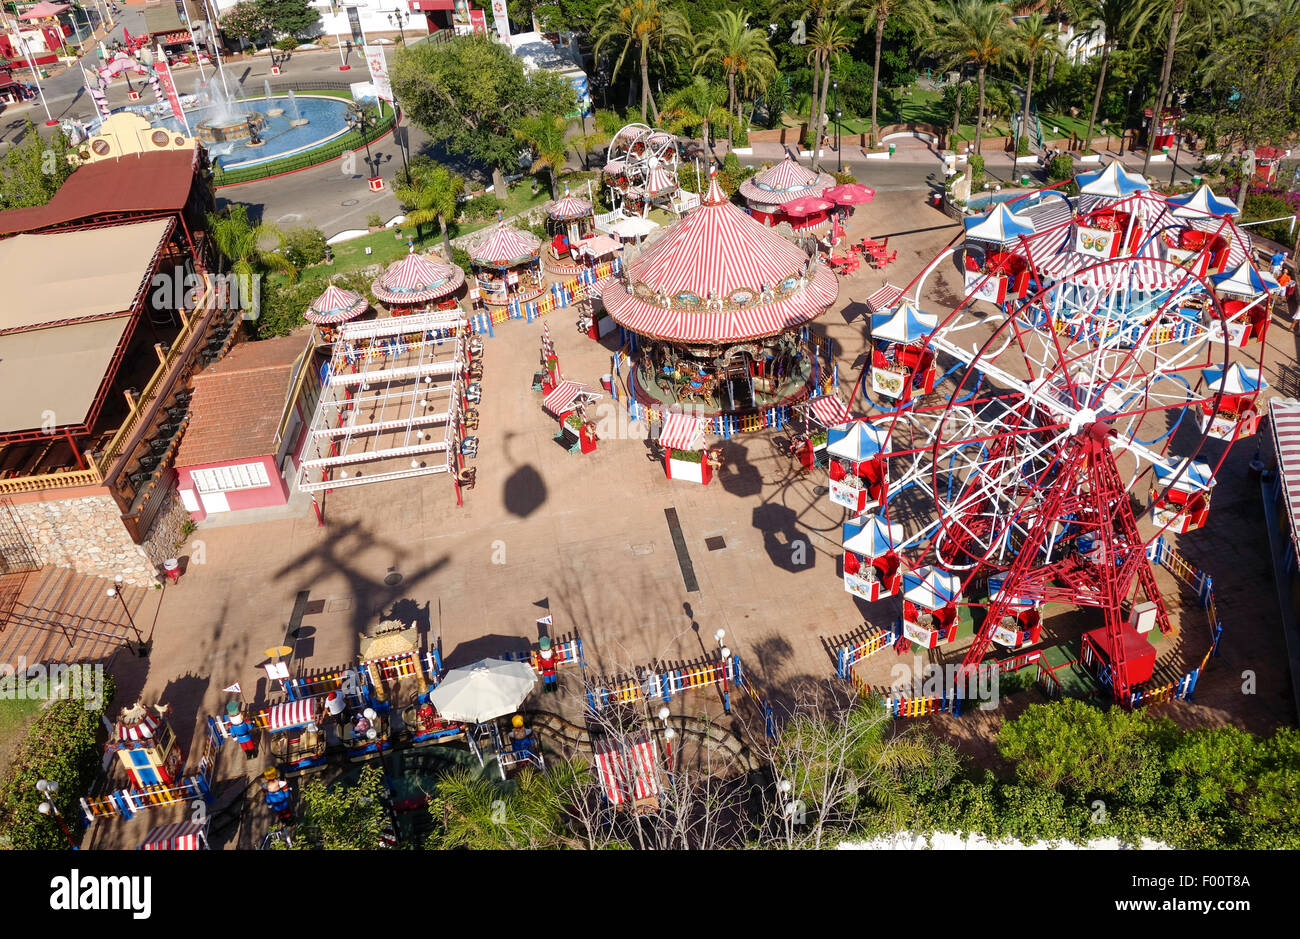 Tivoli Park Rides Aerial View Of Tivoli World Amusement Park, Benalmadena